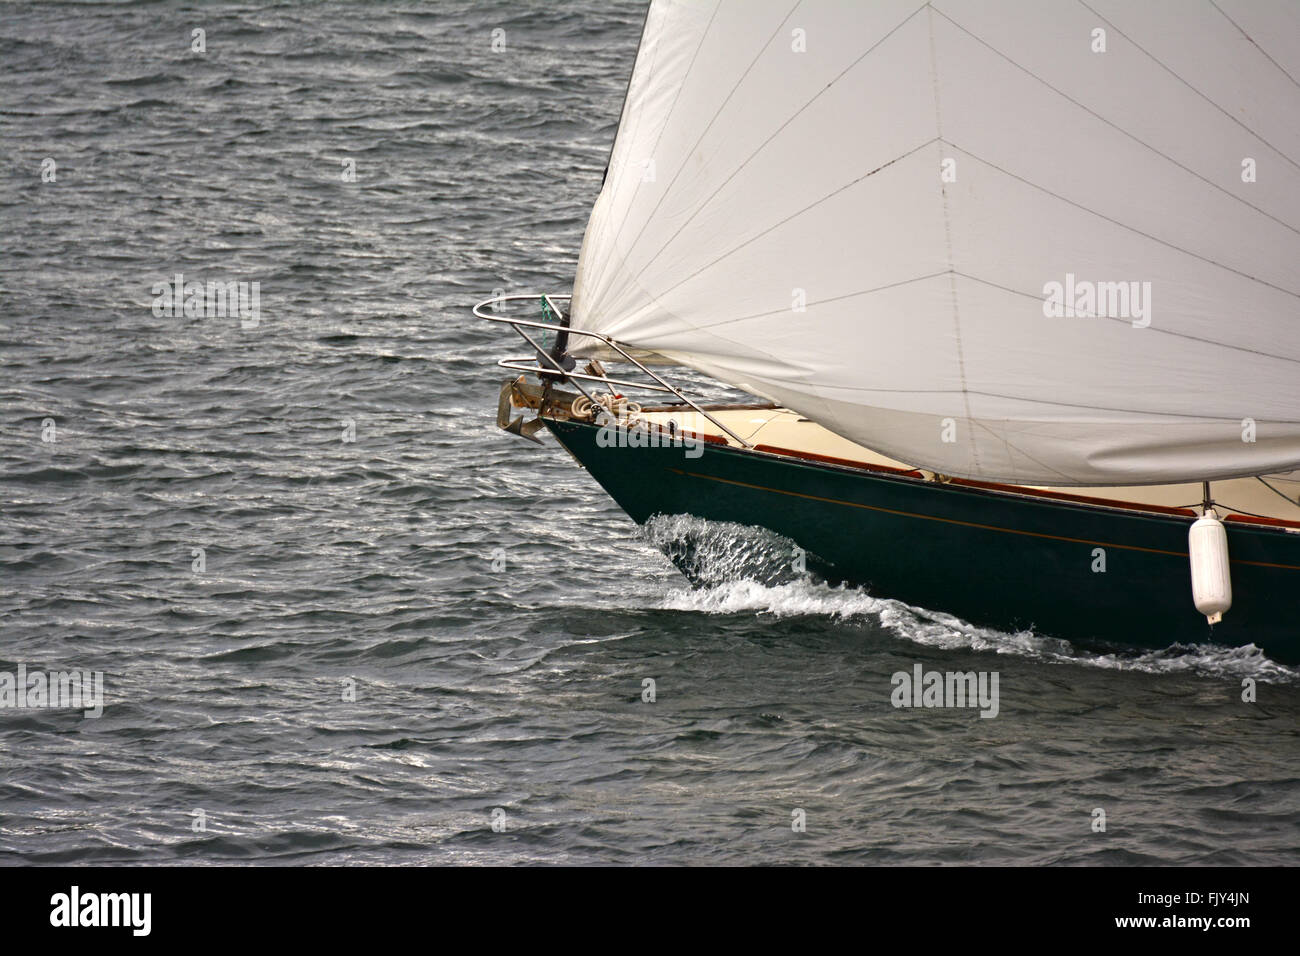 Sail boat cut the water - Stock Image